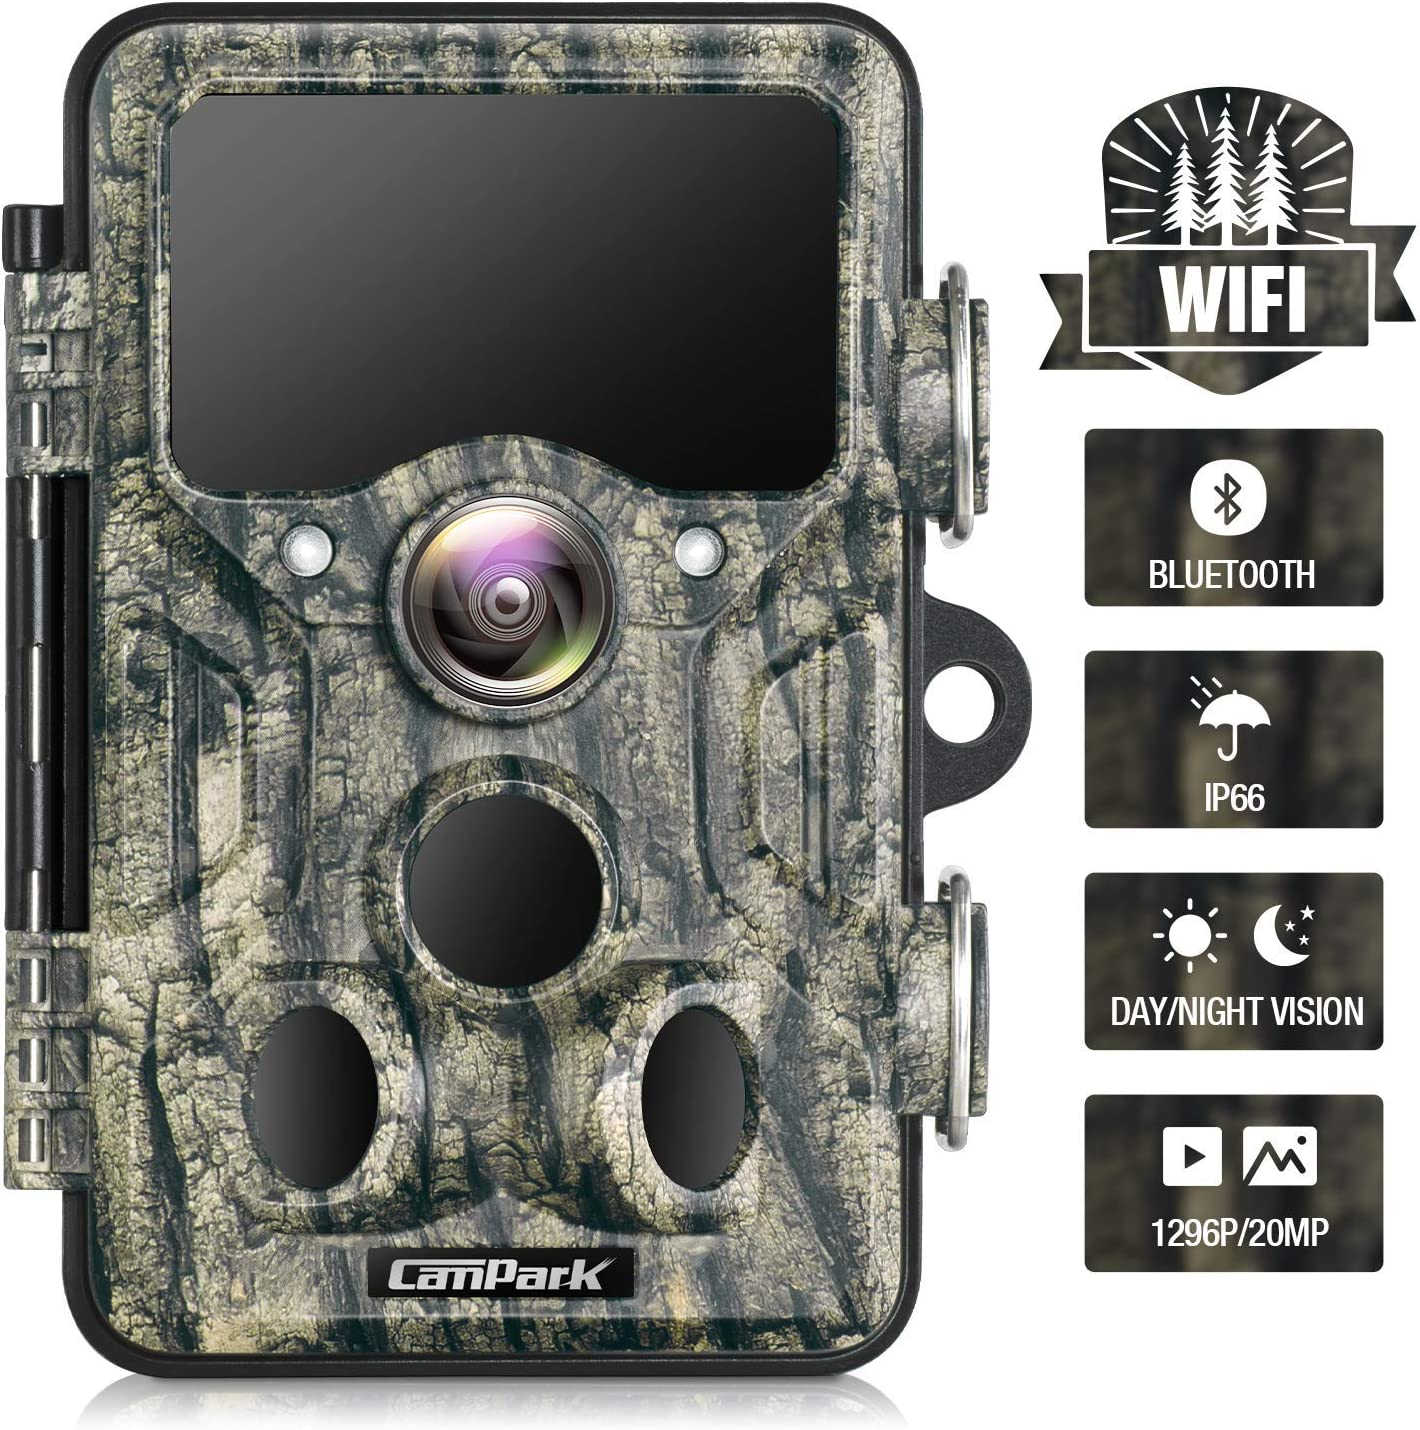 Campark WiFi Bluetooth Trail Camera 20MP 1296P Game Hunting Camera with 940nm IR LEDs No Glow Night Vision Motion Activated Waterproof IP66 for Monitoring Outdoor Wildlife Animal